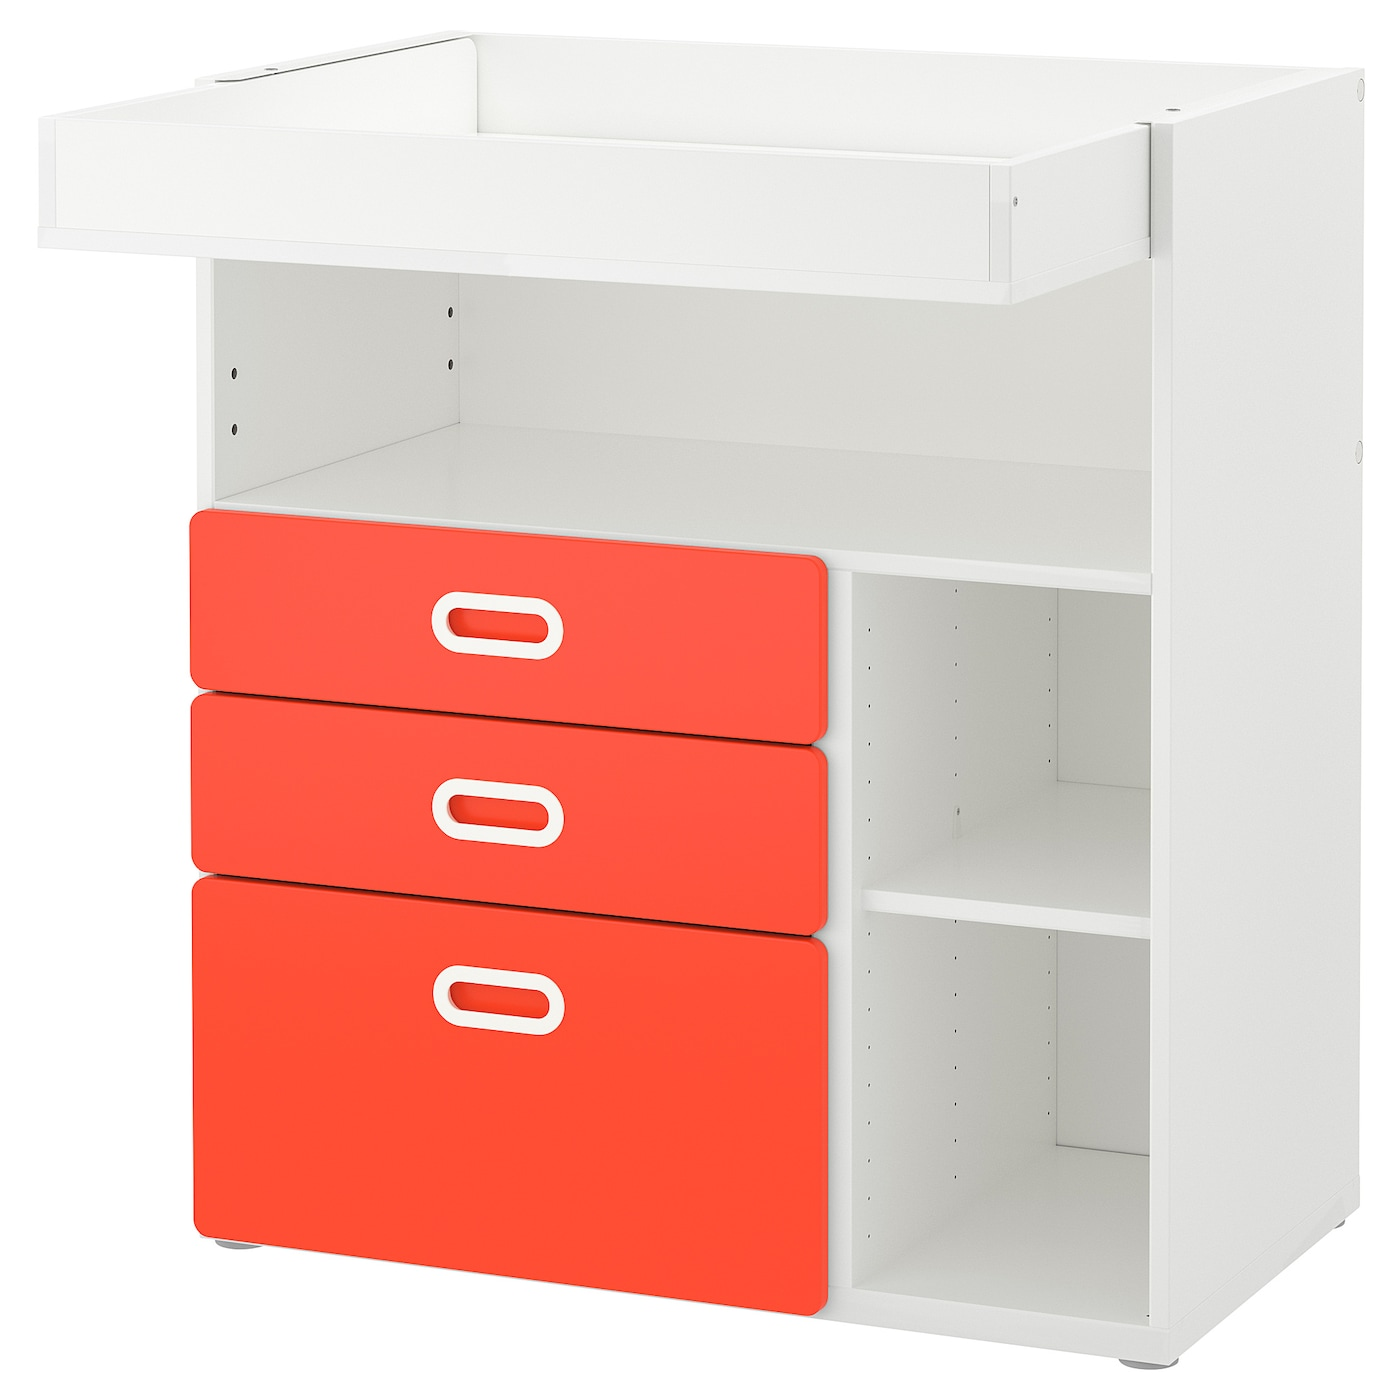 Astounding Stuva Fritids Changing Table With Drawers White Red Download Free Architecture Designs Intelgarnamadebymaigaardcom